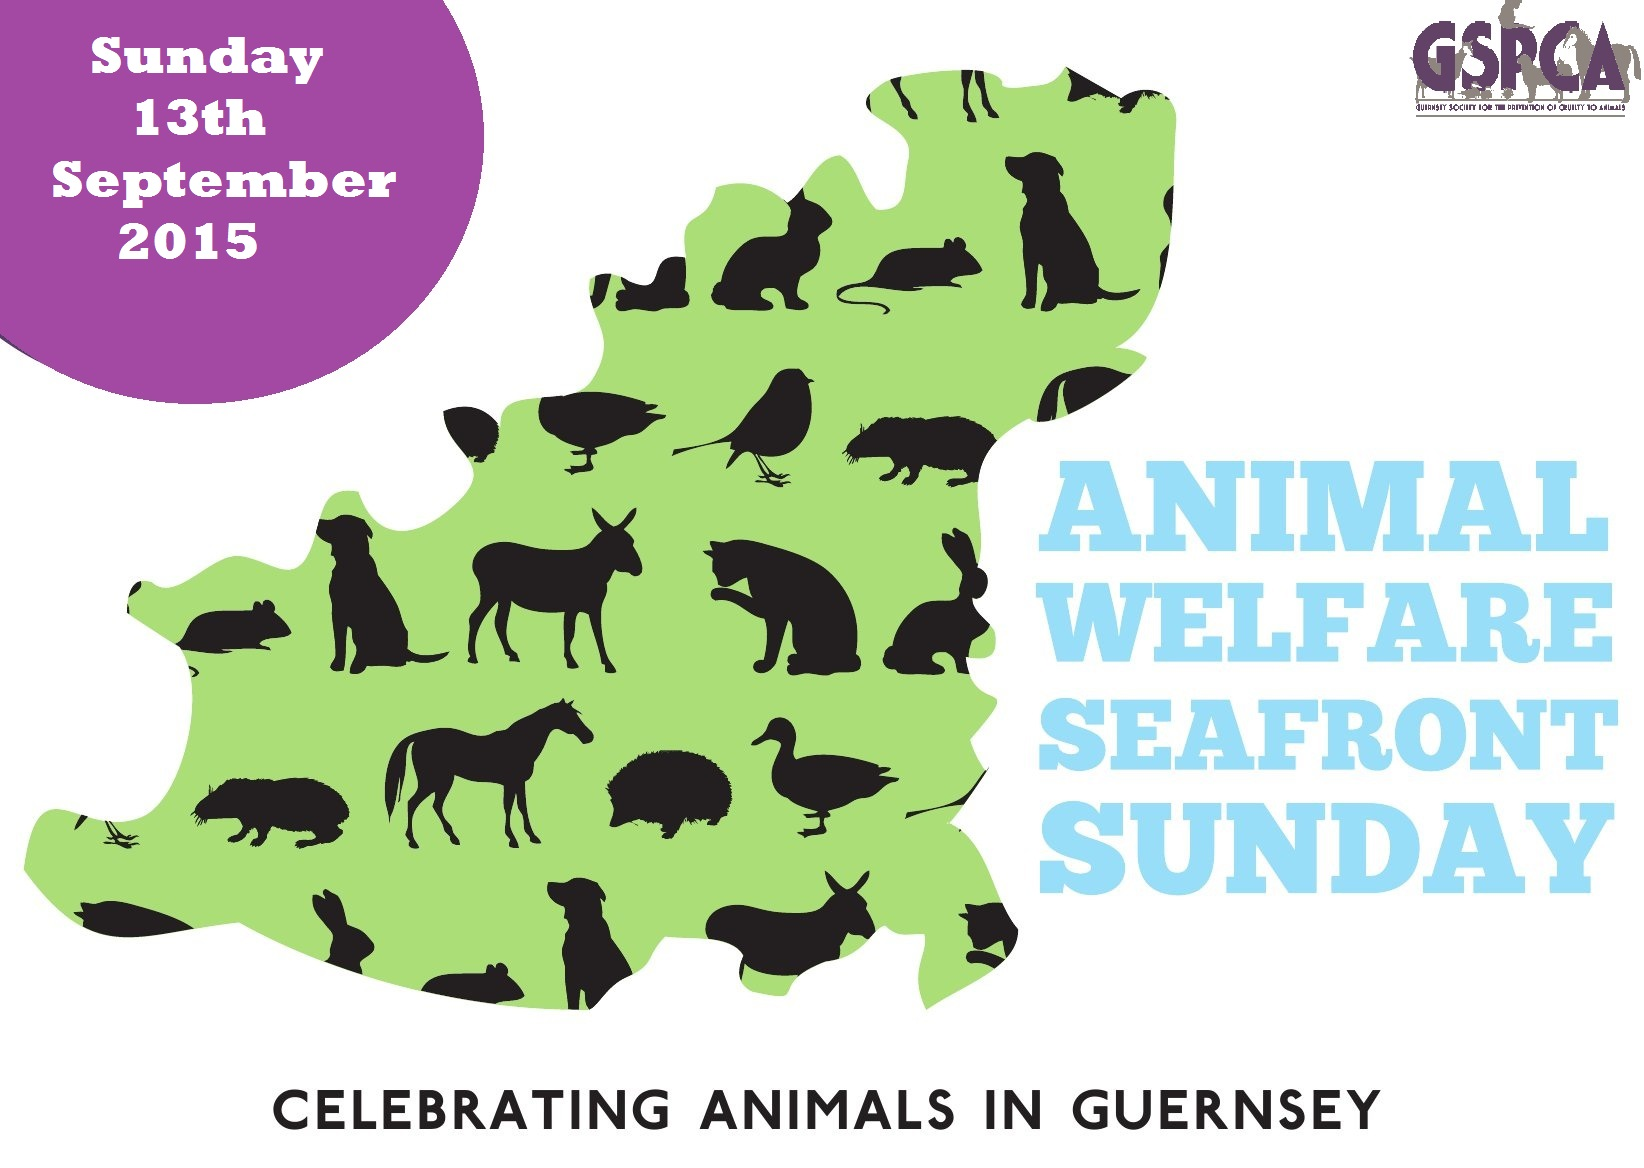 Animal Welfare Seafront Sunday 2015 GSPCA Guernsey